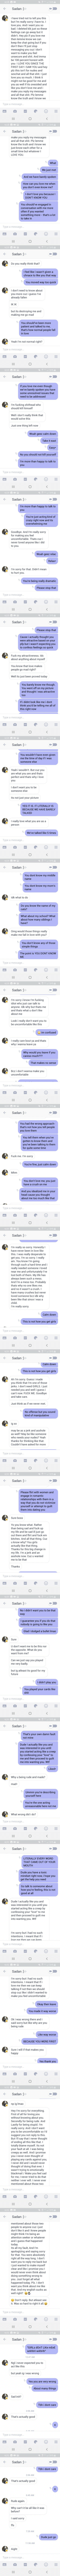 Oh lord help me (there's several screenshots): 51%  4:18  Sadan  i have tried not to tell you this  but I'm really sorry i have to. I  love you. And i want you so  bad. I deleted kik just so these  feelings can go away but it  didn't. Hey plz if you love me  then lemme know we can  keep the chat going but if you  don't then I'll just stop  messaging you cuz i don't  want to make you feel  unsecure and shit. And imma  be 100 percent honest with  you I LOVE YOU SINCE THE  FIRST DAY I SAW YOU and hey  plz this isn't for nudes and  sexchat and all that shit. I just  love you so much. I think it  might not be good for me and  you as well if its onesided and  like you don't love me and i  make you reply my messages  and all that shit. Plz lemme  know the truth and i know we  Type a message..  4:18  50%  Sadan  make you reply my messages  and all that shit. Plz lemme  know the truth and i know we  just know each other for a  small time but whatever  LOVE YOU  What  We just met  And we have barely spoken  How can you love me when  you don't even know me?  I don't love you because  DON'T KNOW YOU  You should've engaged in  conversation with me more  often if you wanted  something more- that's a lot  to take in  Type a message..  O  419  Sadan:  Da you really think that?  I feel like i wasn't given a  chnace to like you that way  You moved way too quick  I don't need to know about  you more cuz i guess I've  already fallen  IK IK  but its destroying me and  making me go mad  You should've been more  patient and talked to me,  that's how normal people fall  in love  Yeah I'm not normal right?  Type a message..  50%  19  Sadan:)  If you love me even though  we've barely spoken you have  some unresolved issues that  need to be addressed  I'm fucking shithead who  should kill himself  Well i don't really think that  would solve this  Just one thing left now  Woah geez calm down  Take it east  Easy*  No you should not kill yourself  I'm more than happy to talk to  you  Type a mess